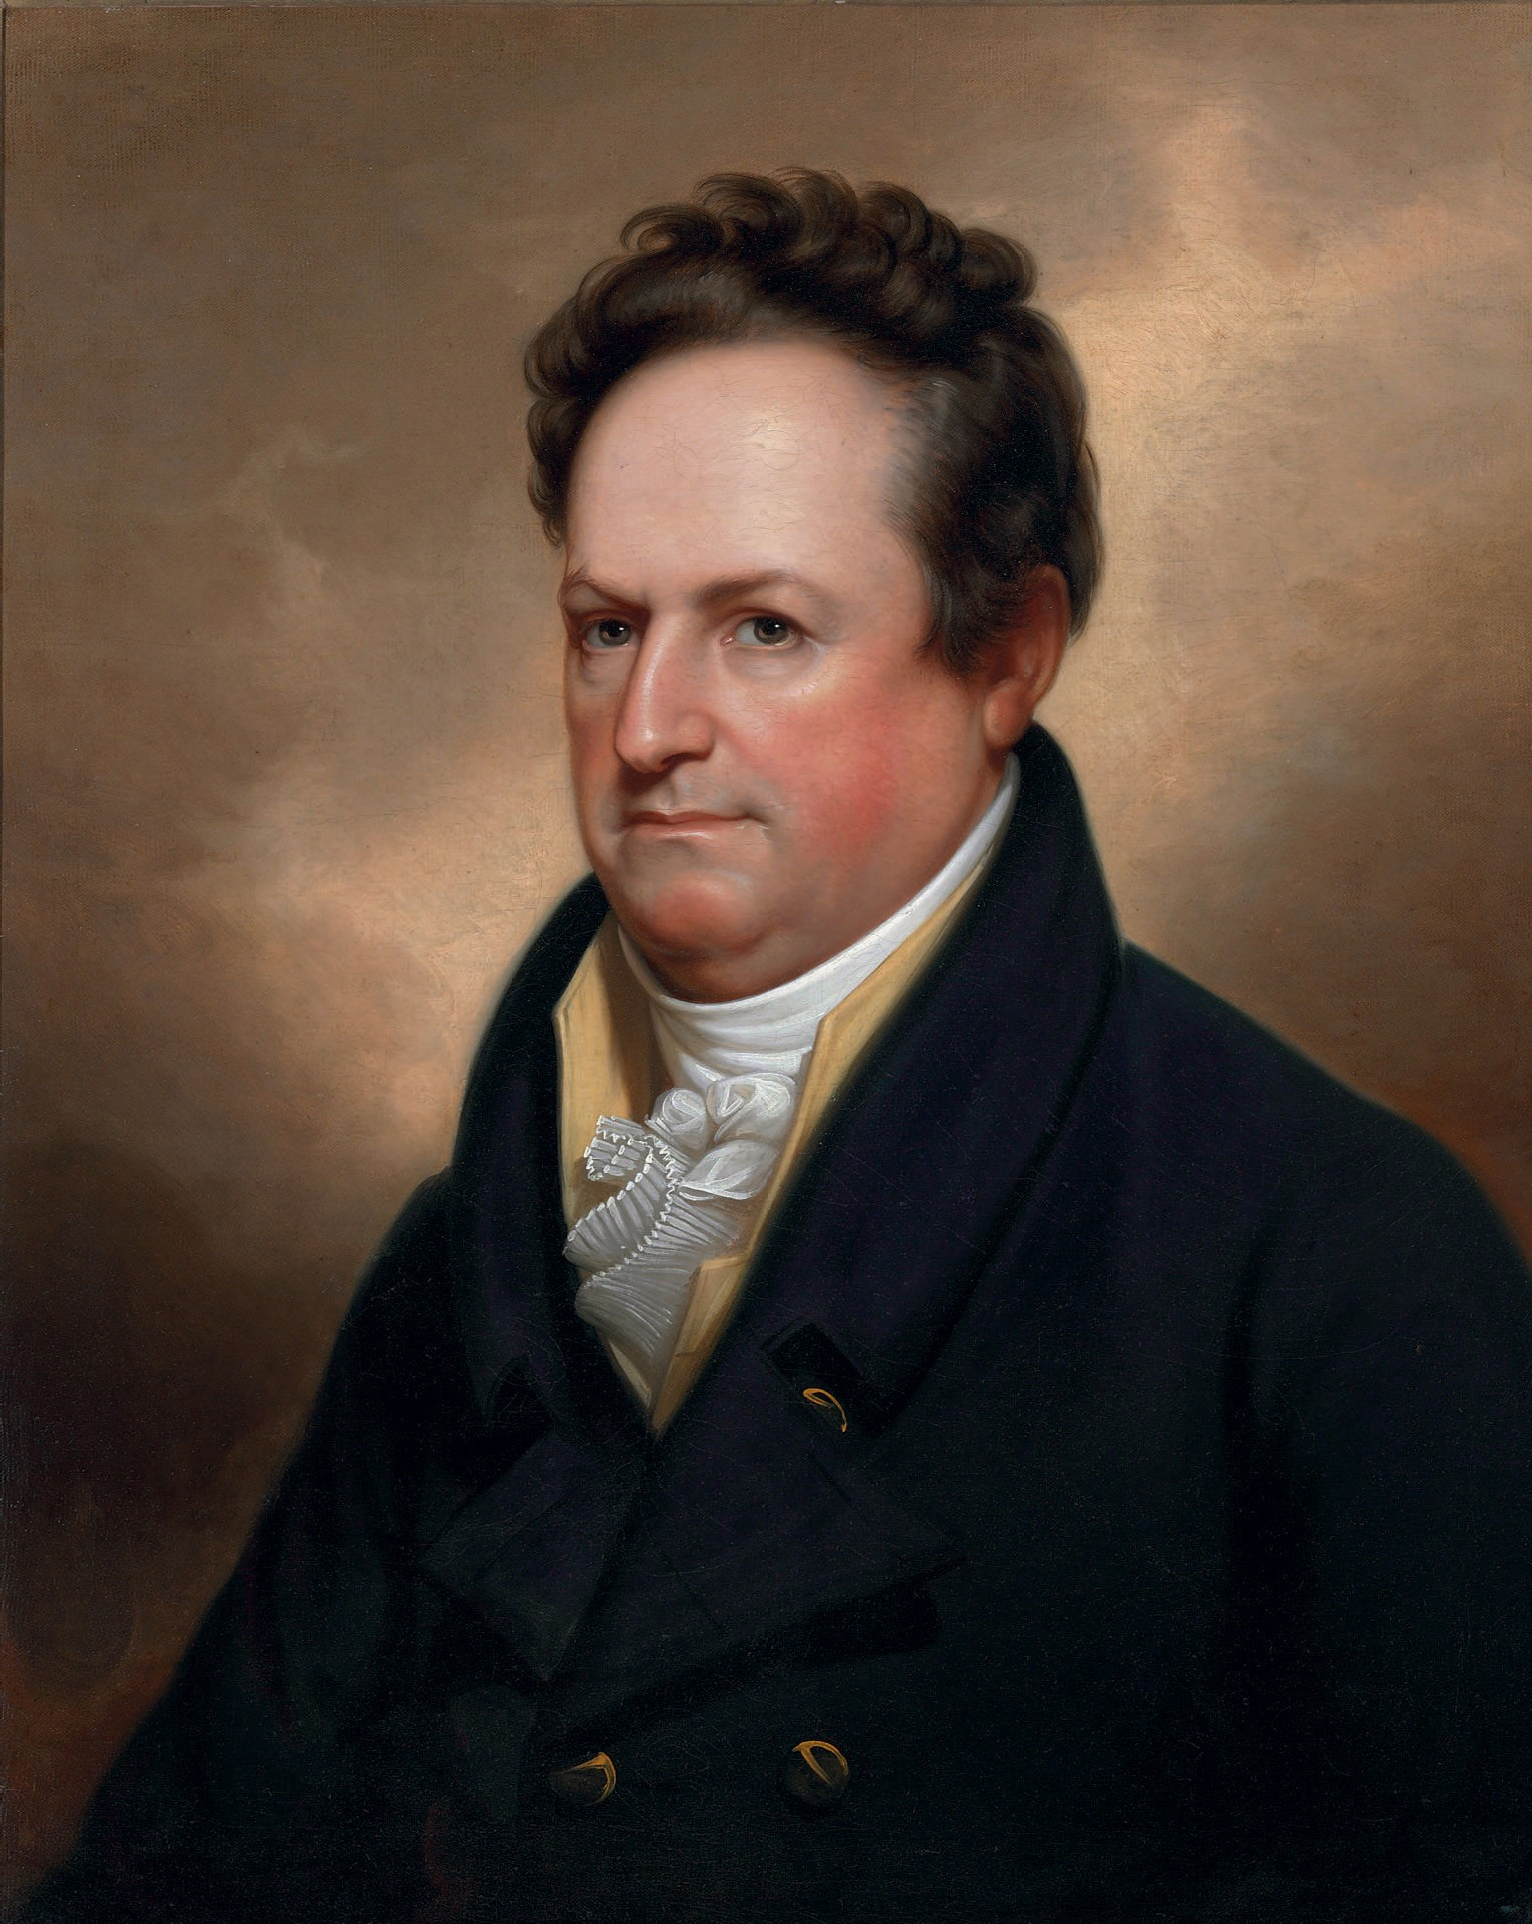 a biography of james madison and de witt clinton a presidental candidates in 1812 Unsuccessful candidates for presidents of us biography doesn't mention this james madison (dem 1812 de witt clinton (fed) jared ingersoll 1816 rufus.